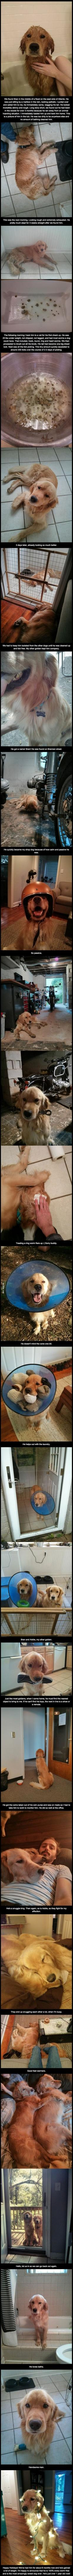 """I rescued a golden retriever this past summer who was just hanging out in the wilds of Atlanta."" LOVED this story!: Sweet Stories, Golden Retrievers, Faith In Humanity Restored, My Heart, Puppy, Animal"